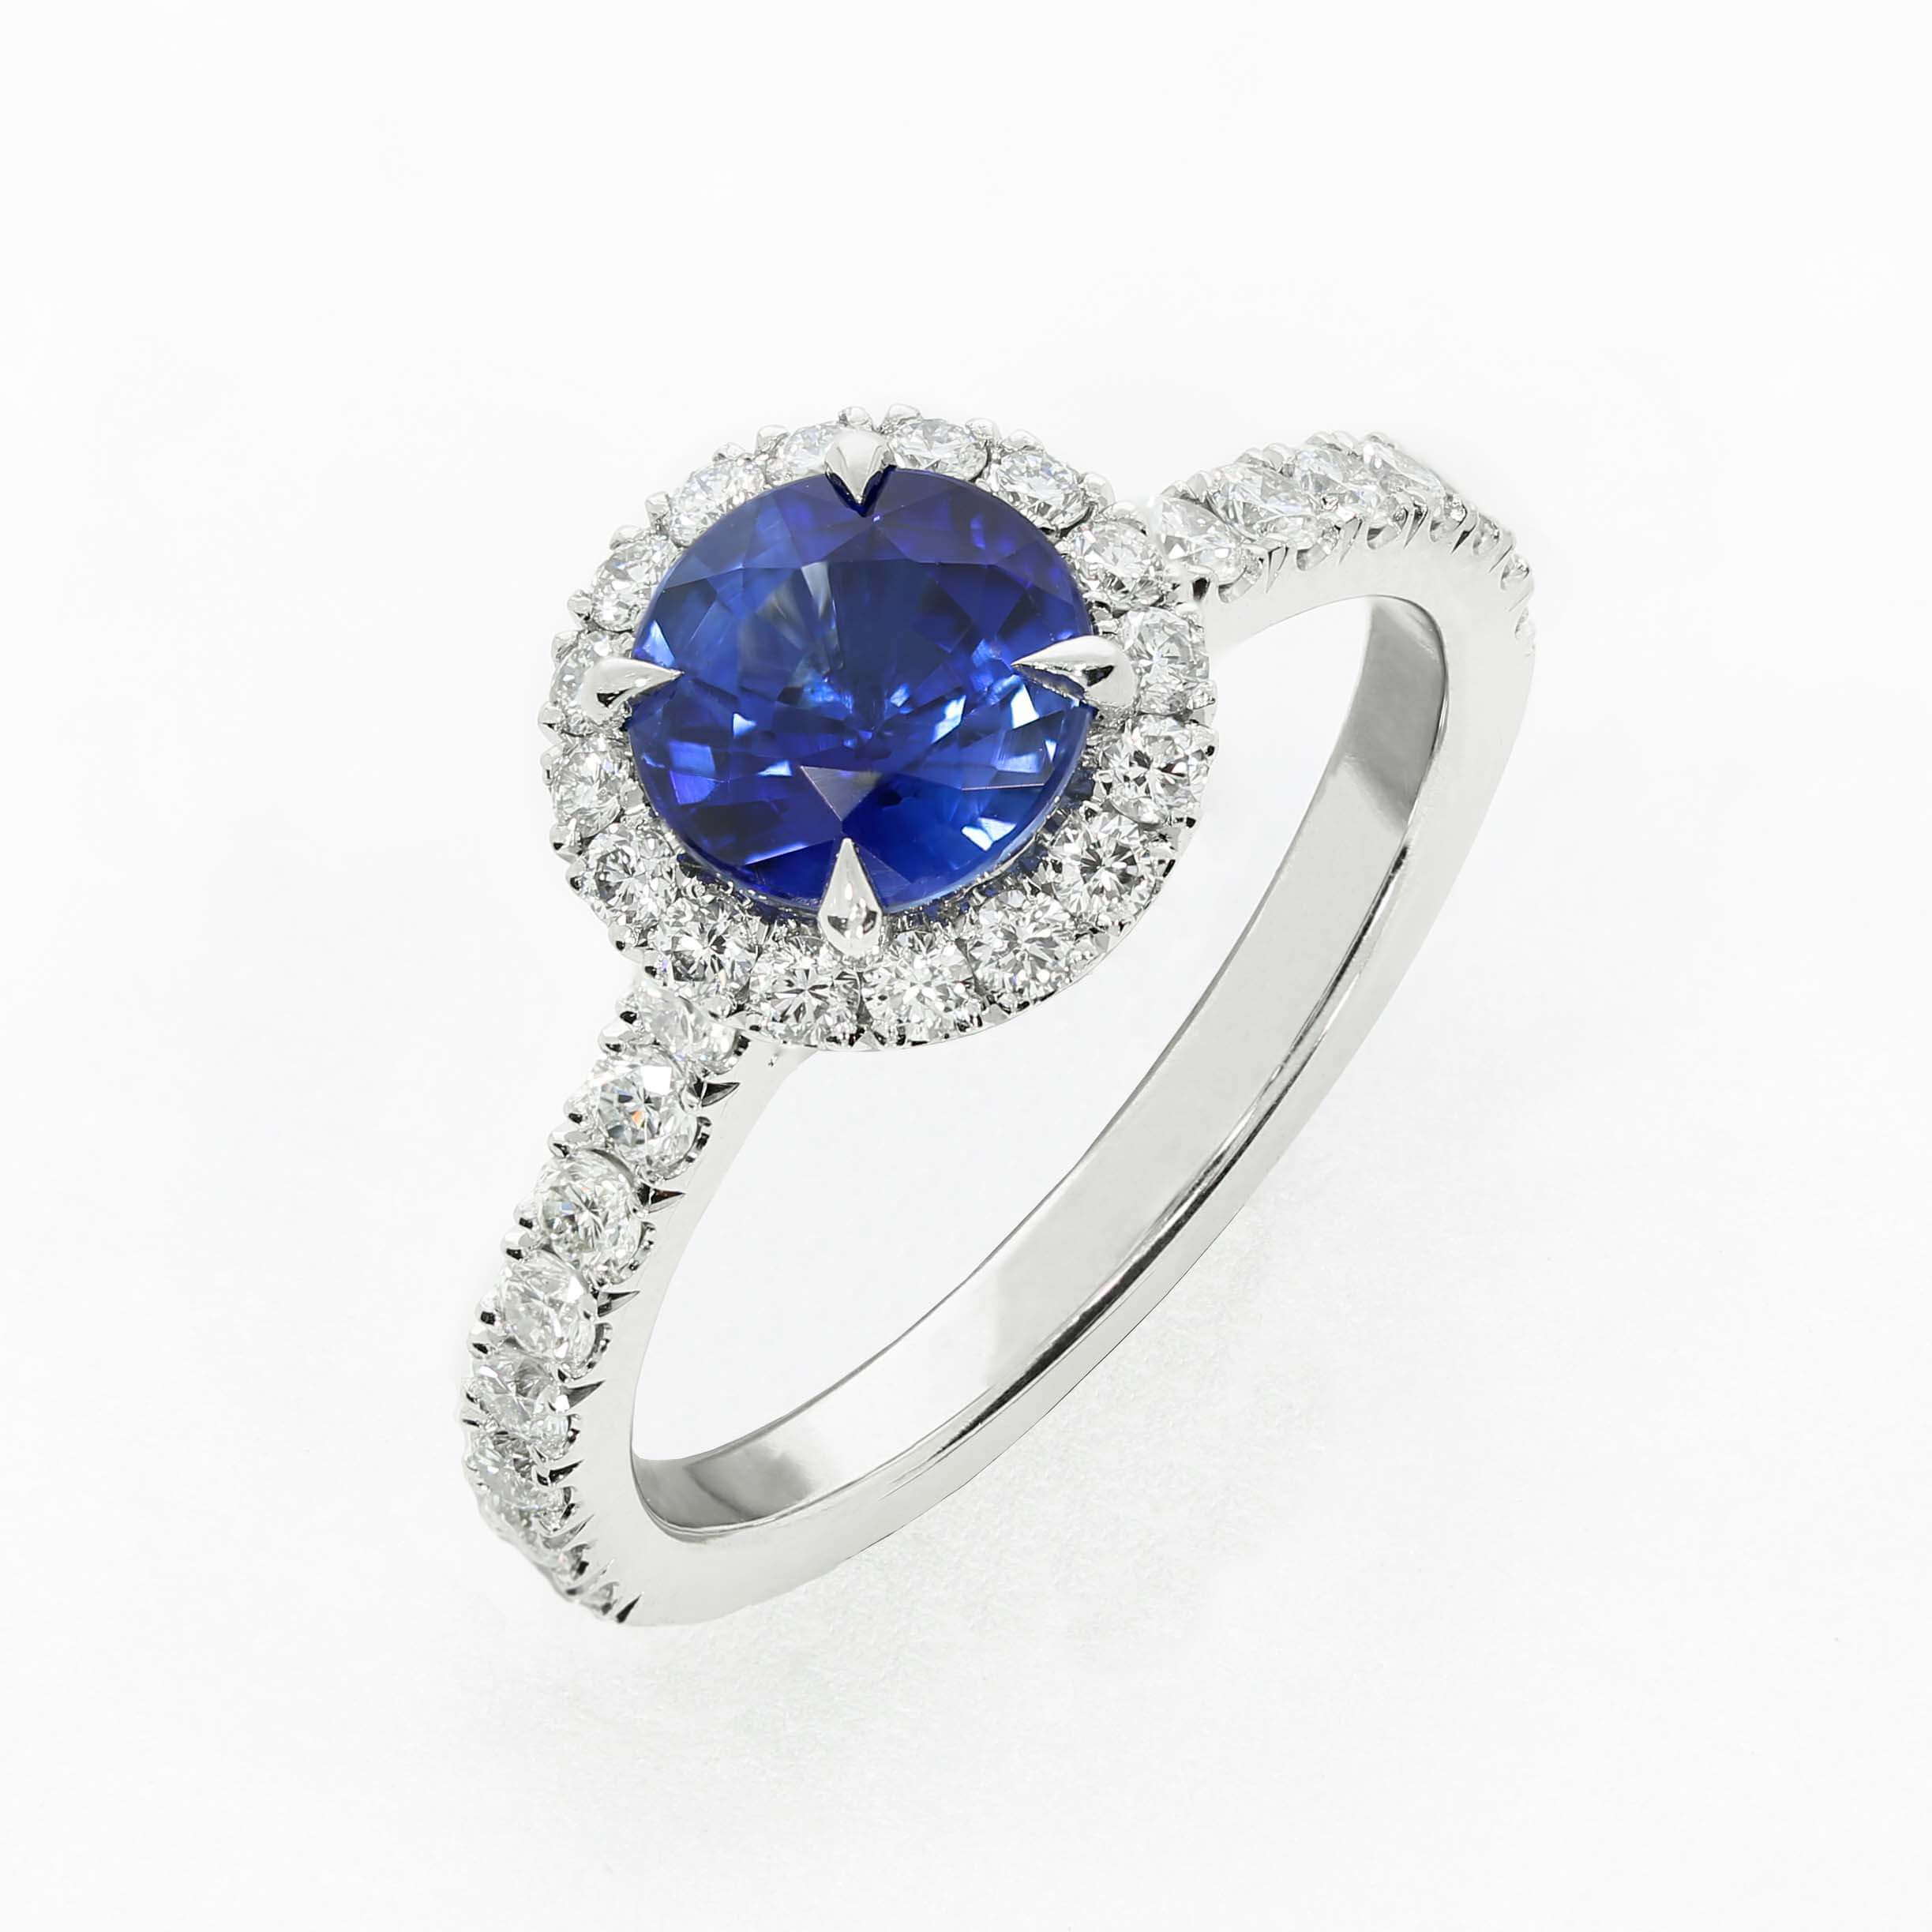 Queensmith's  Classic Oberon engagement ring, with 1.45ct natural blue sapphire